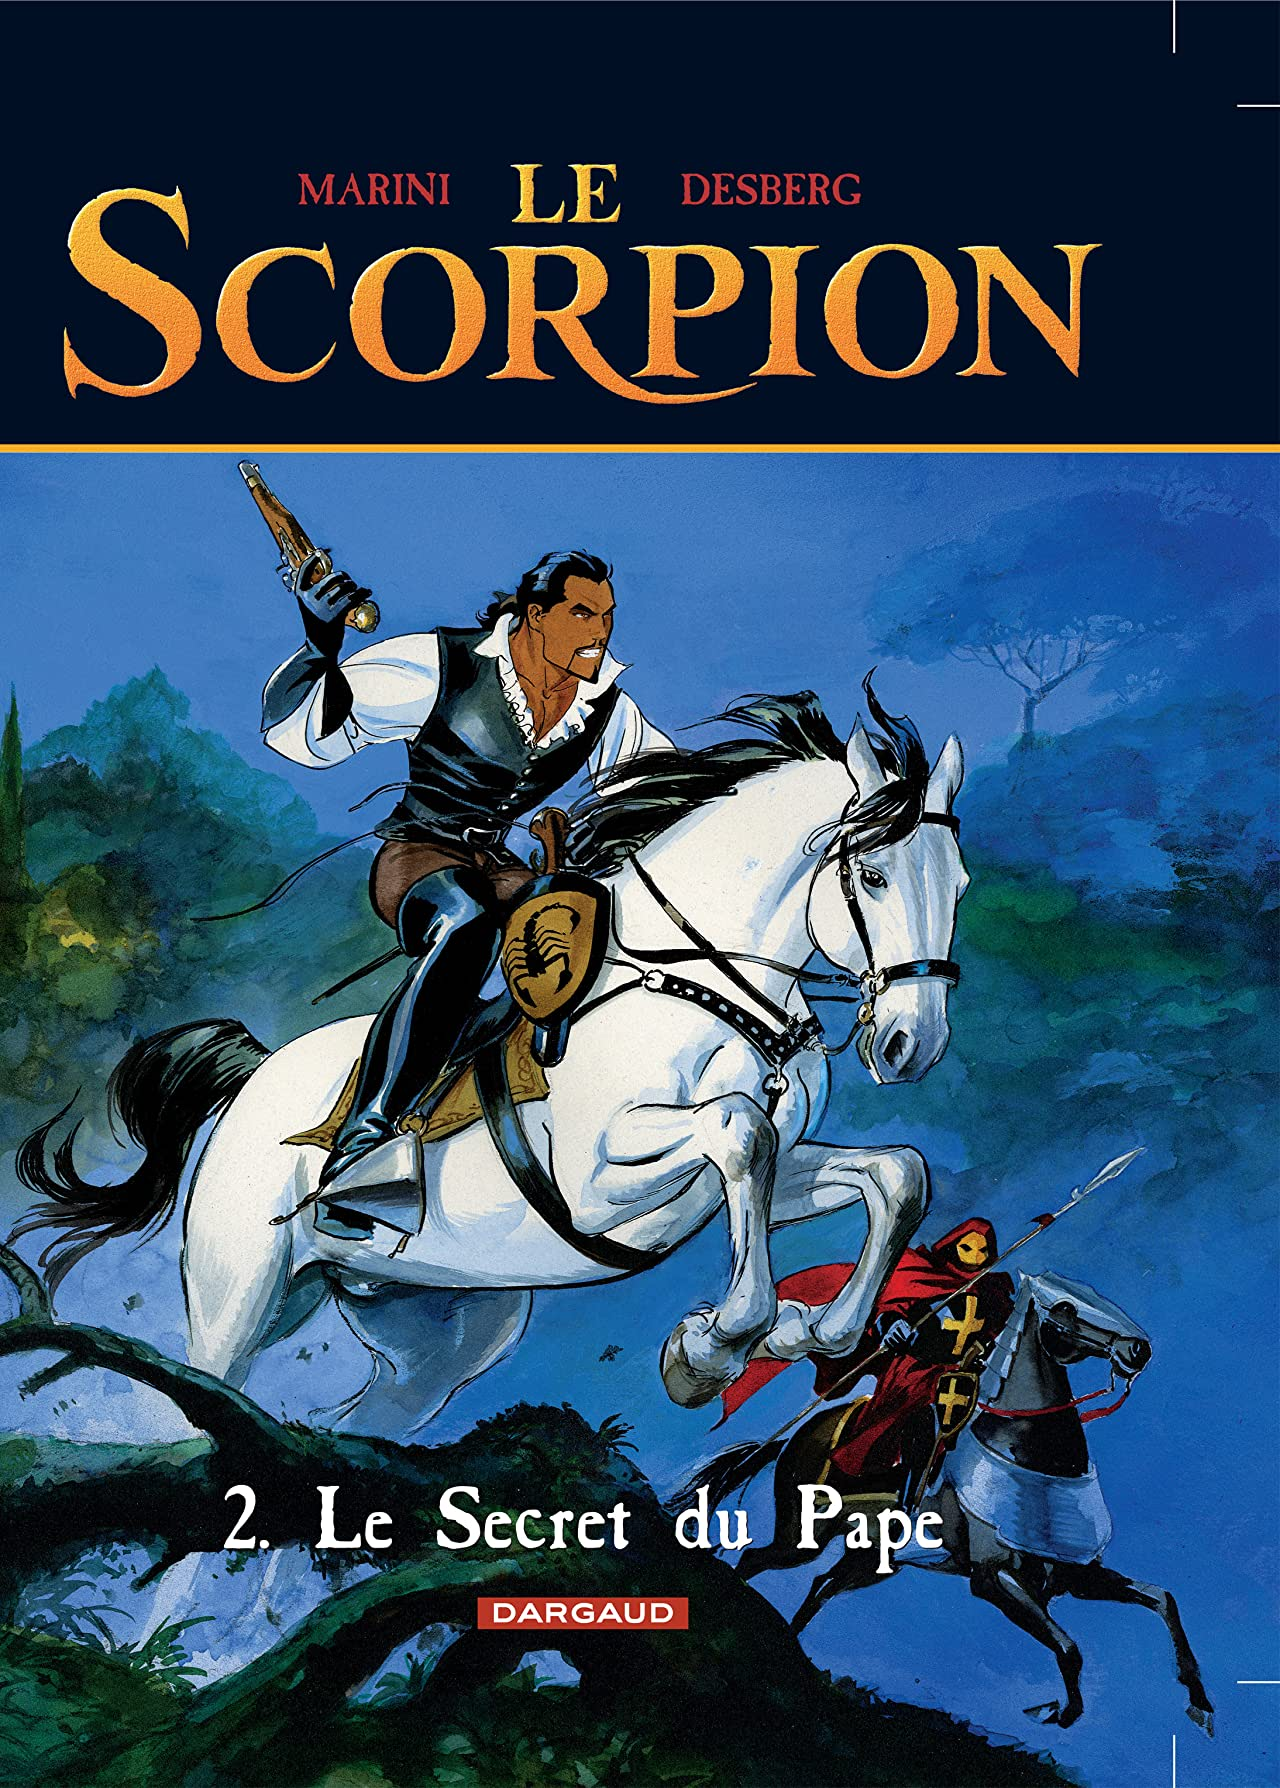 Le Scorpion Vol. 2: Le Secret du Pape